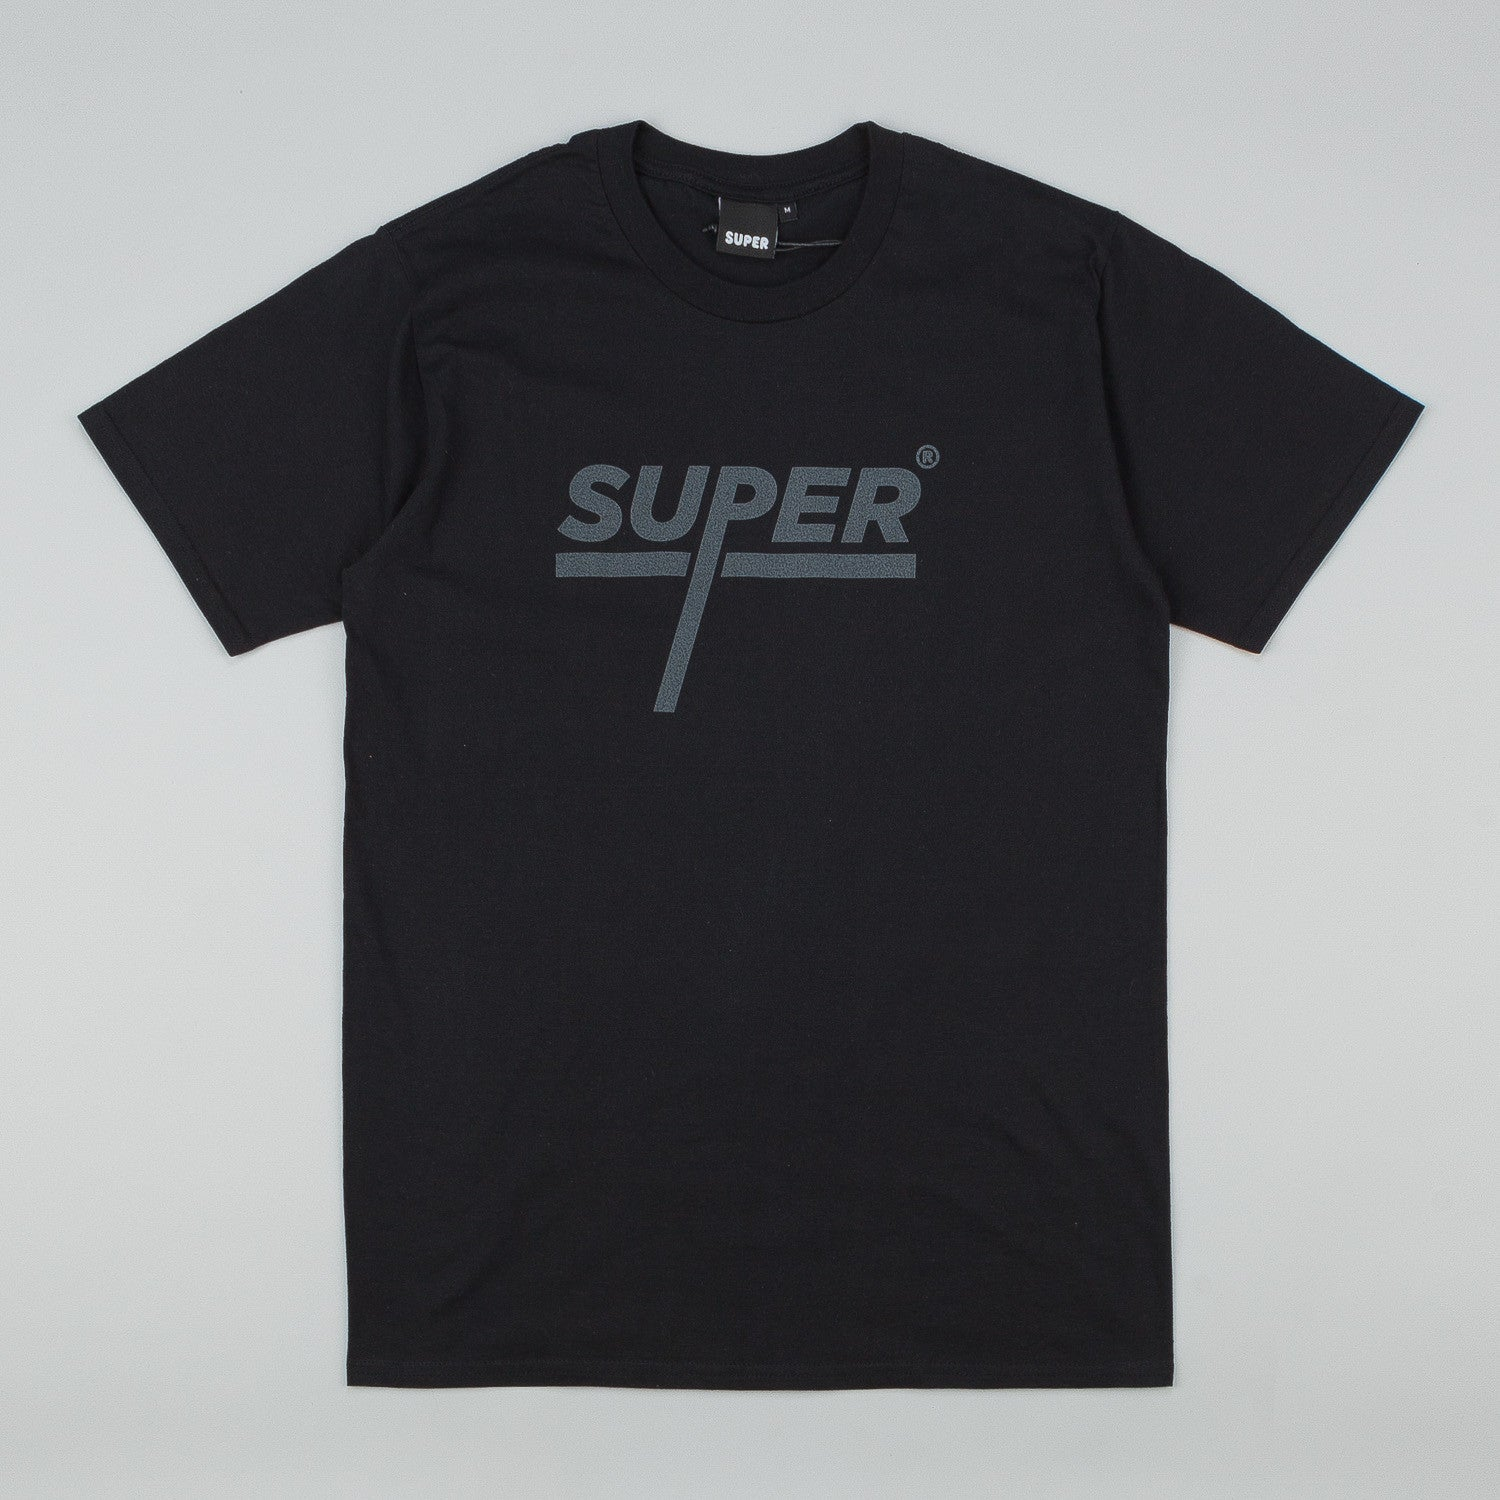 Colorsuper Super Titled T-Shirt - Black / Grey